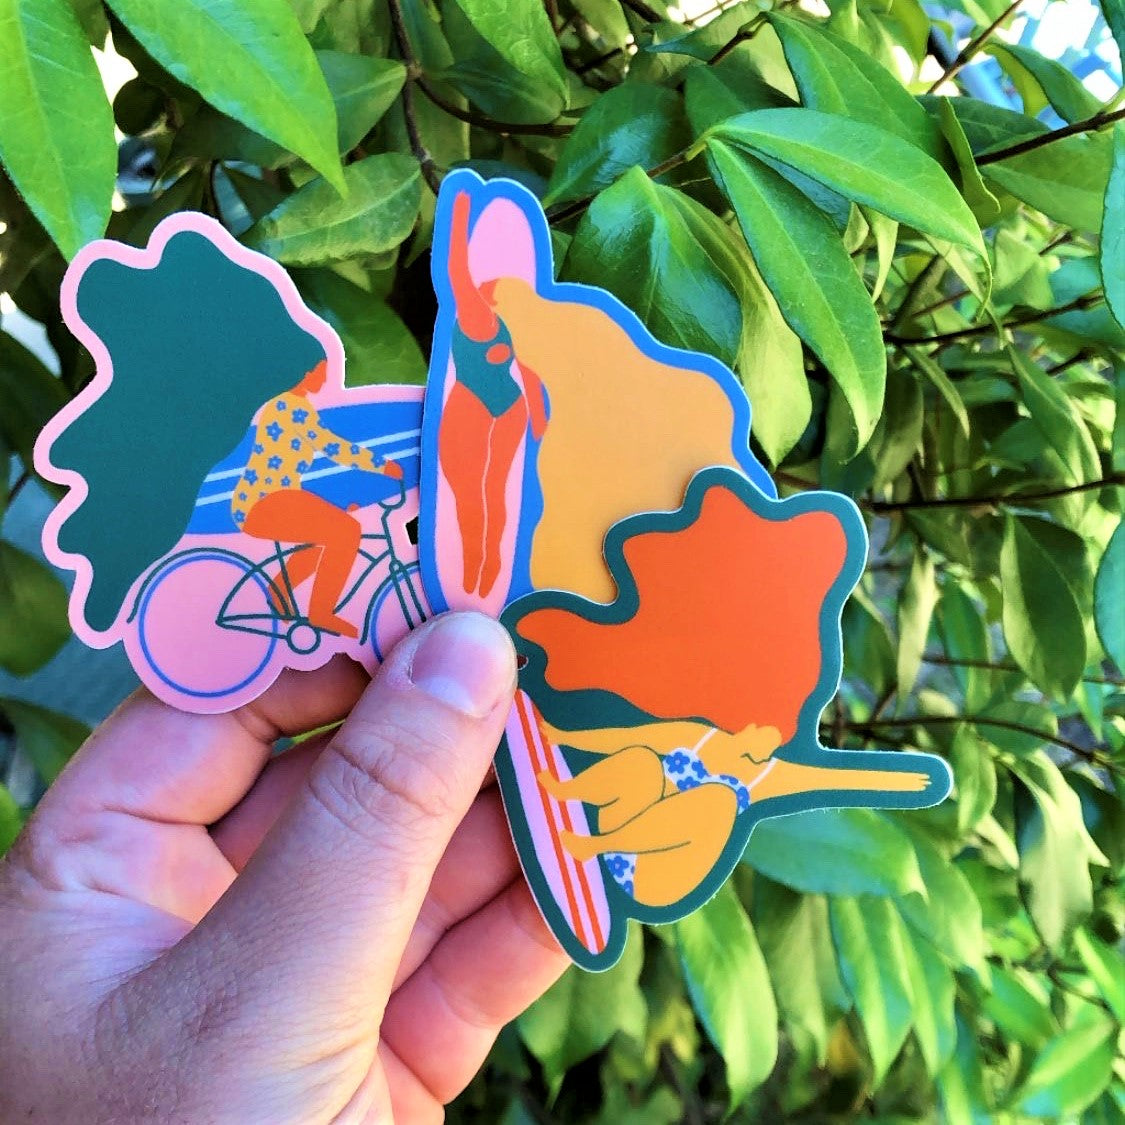 SURFER BABE weatherproof vinyl sticker pack